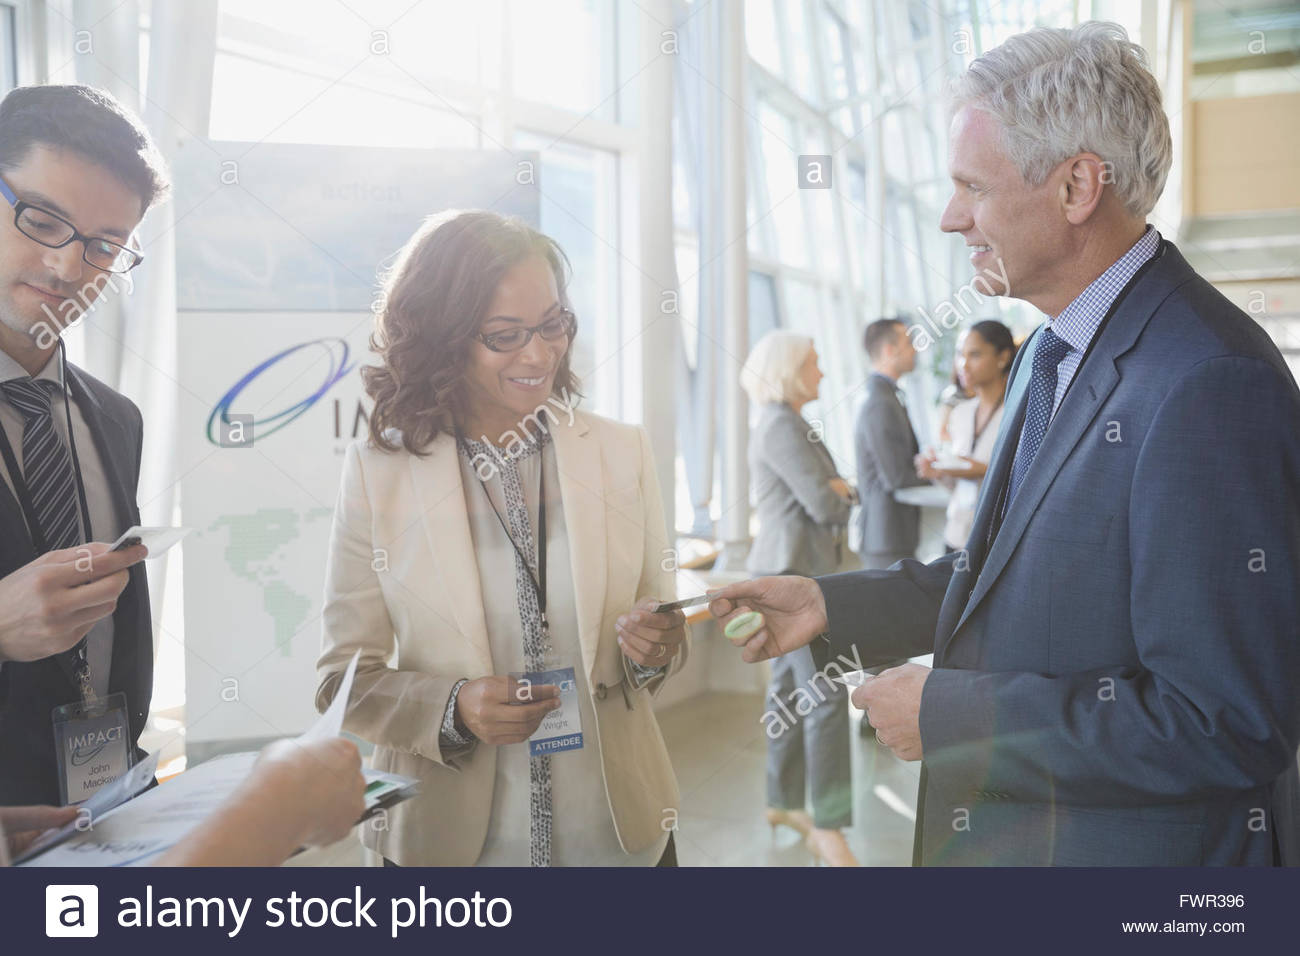 Exchanging business cards african american stock photos exchanging business professionals exchanging business cards stock image colourmoves